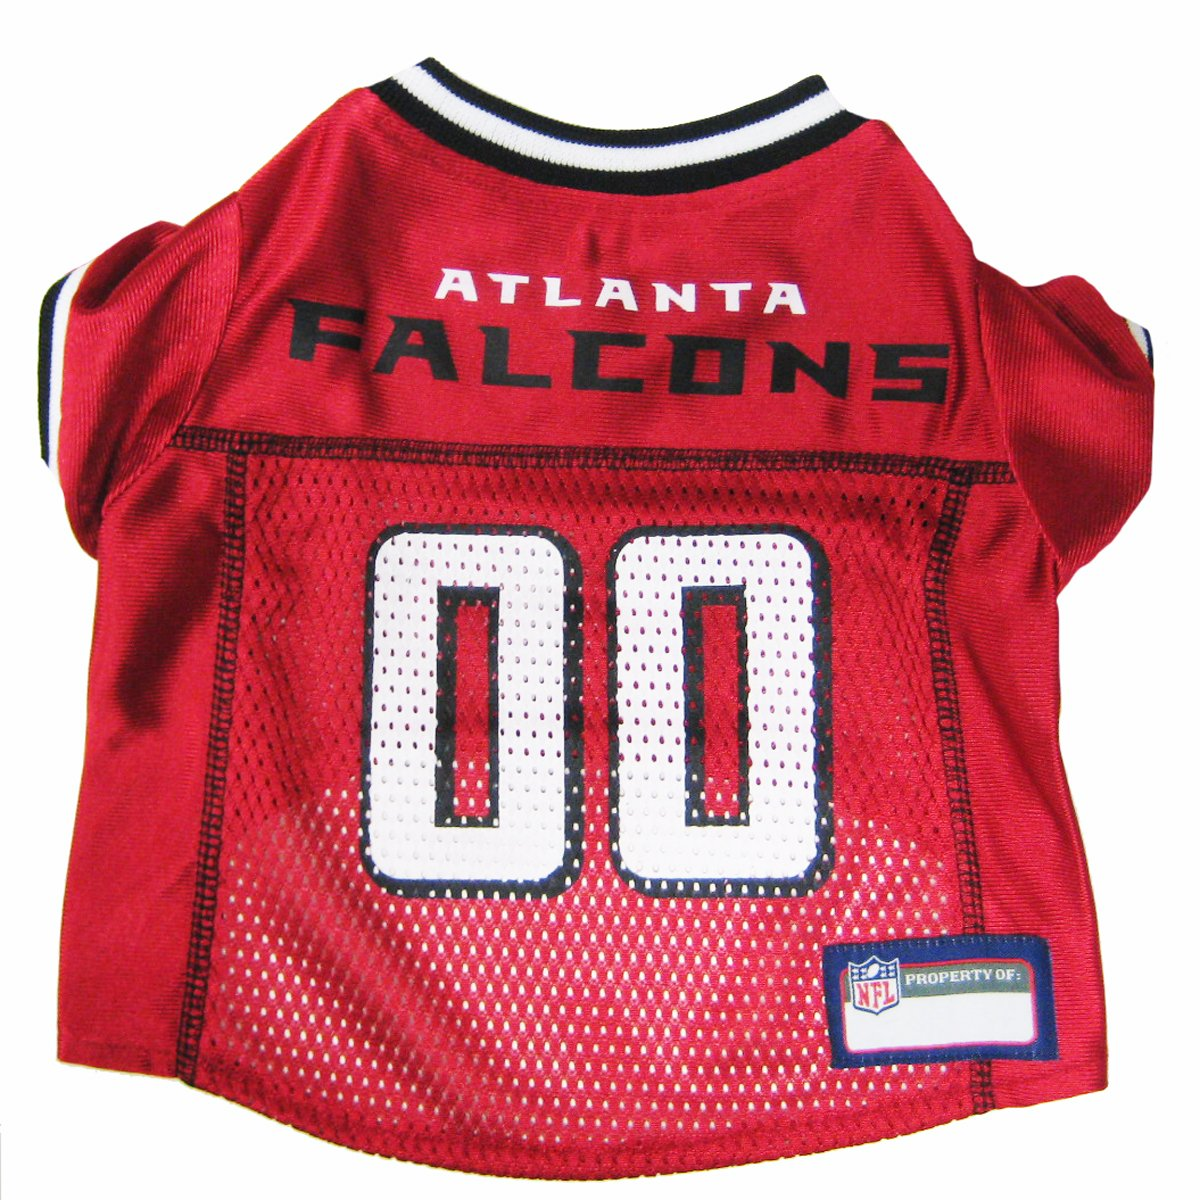 14c753e9 NFL PET JERSEY. Football Licensed Dog Jersey. 32 NFL Teams Available in 7  Sizes. Football Jersey. - Sports Mesh Jersey. Dog Outfit Shirt Apparel